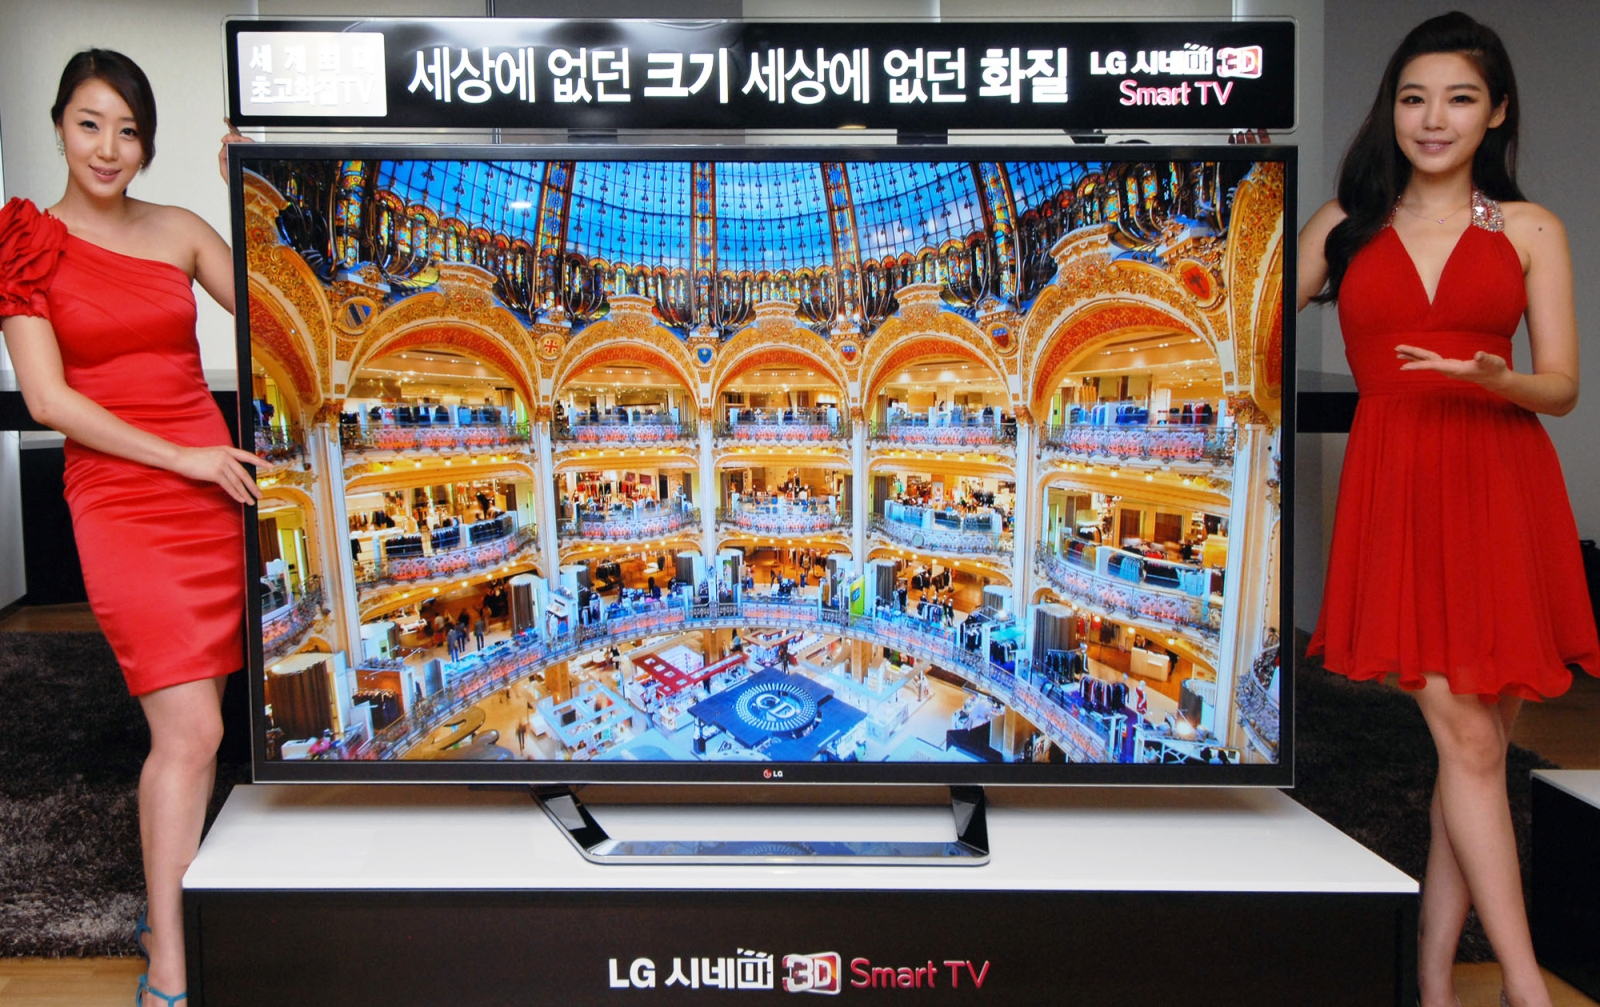 Two models posing at either side of the world's first 84-inch Ultra Definition 3D TV by LG